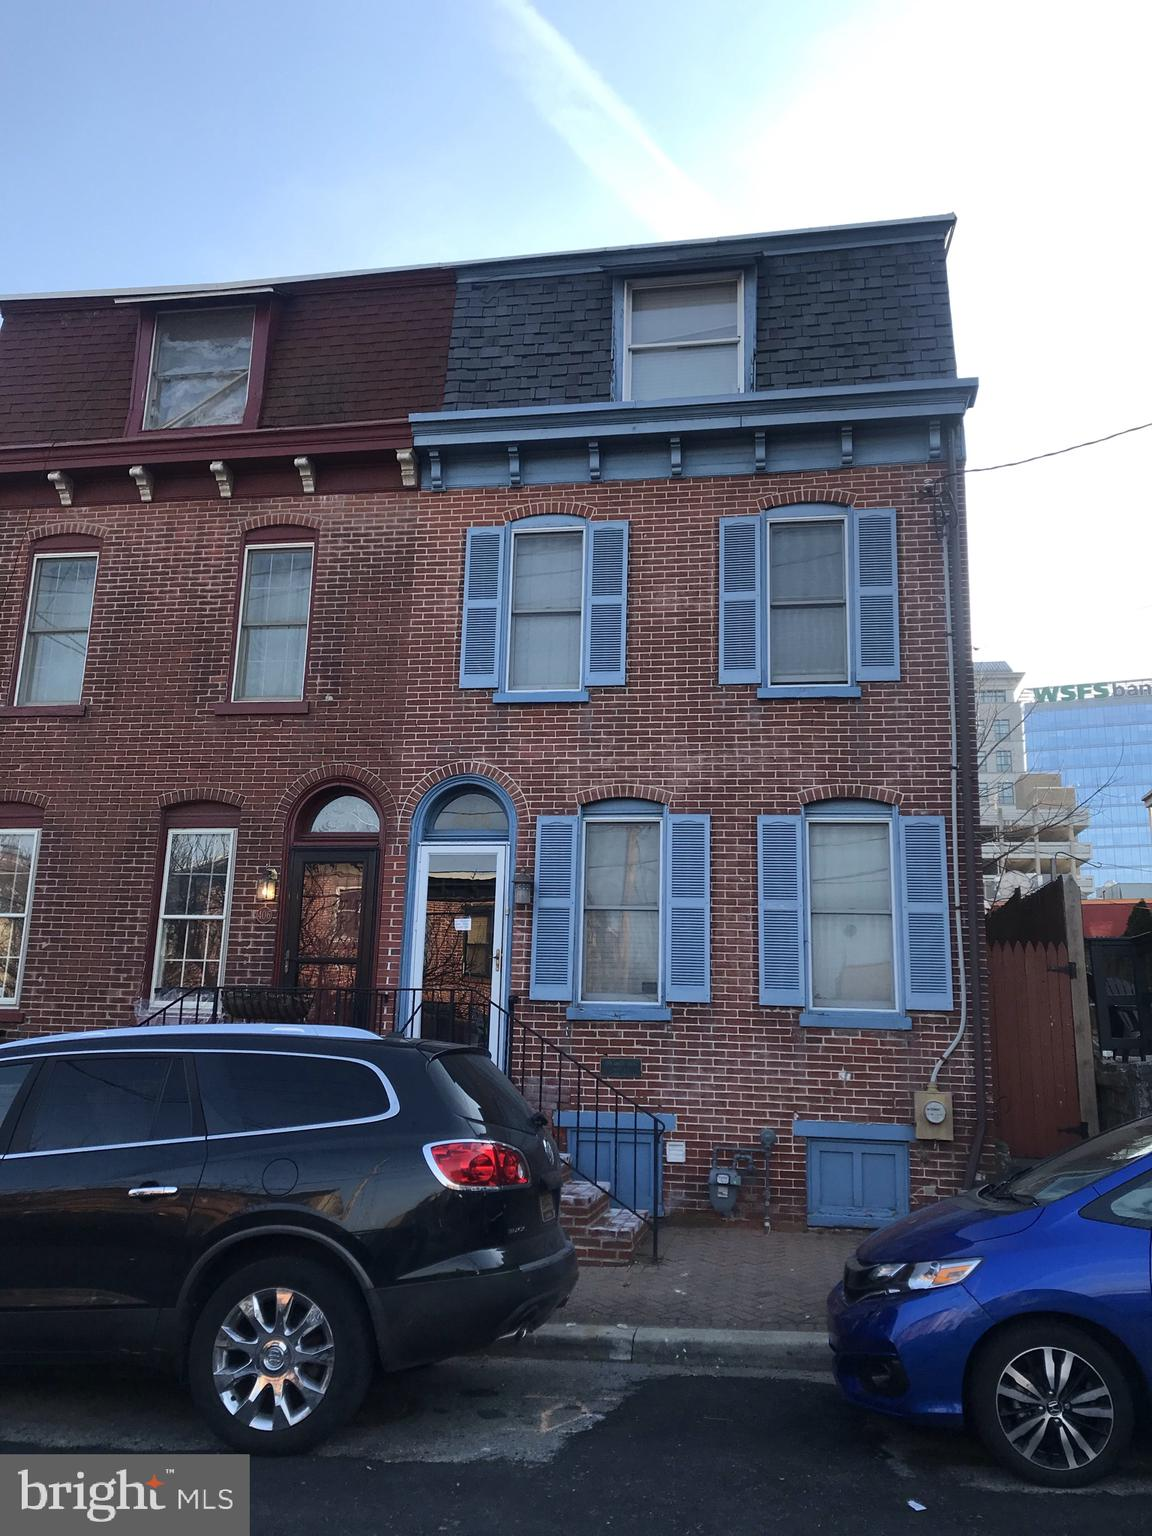 Great 2-bedrm,2 ba.,3-story T/H in the heart of Mid-town Brandywine. This home has a ton of class & character & is within walking distance to the primary business district, & beautiful Brandywine Park. The 1st floor offers an ample kitchen, dining room, & living room. The 2nd floor offers a family room or office, as well as a large full bath and bedroom. The 3rd floor makes up the master suite and is complimented nicely by a 3rd floor balcony that overlooks the Wilmington skyline. Put this home on your tour and you will not be disappointed!